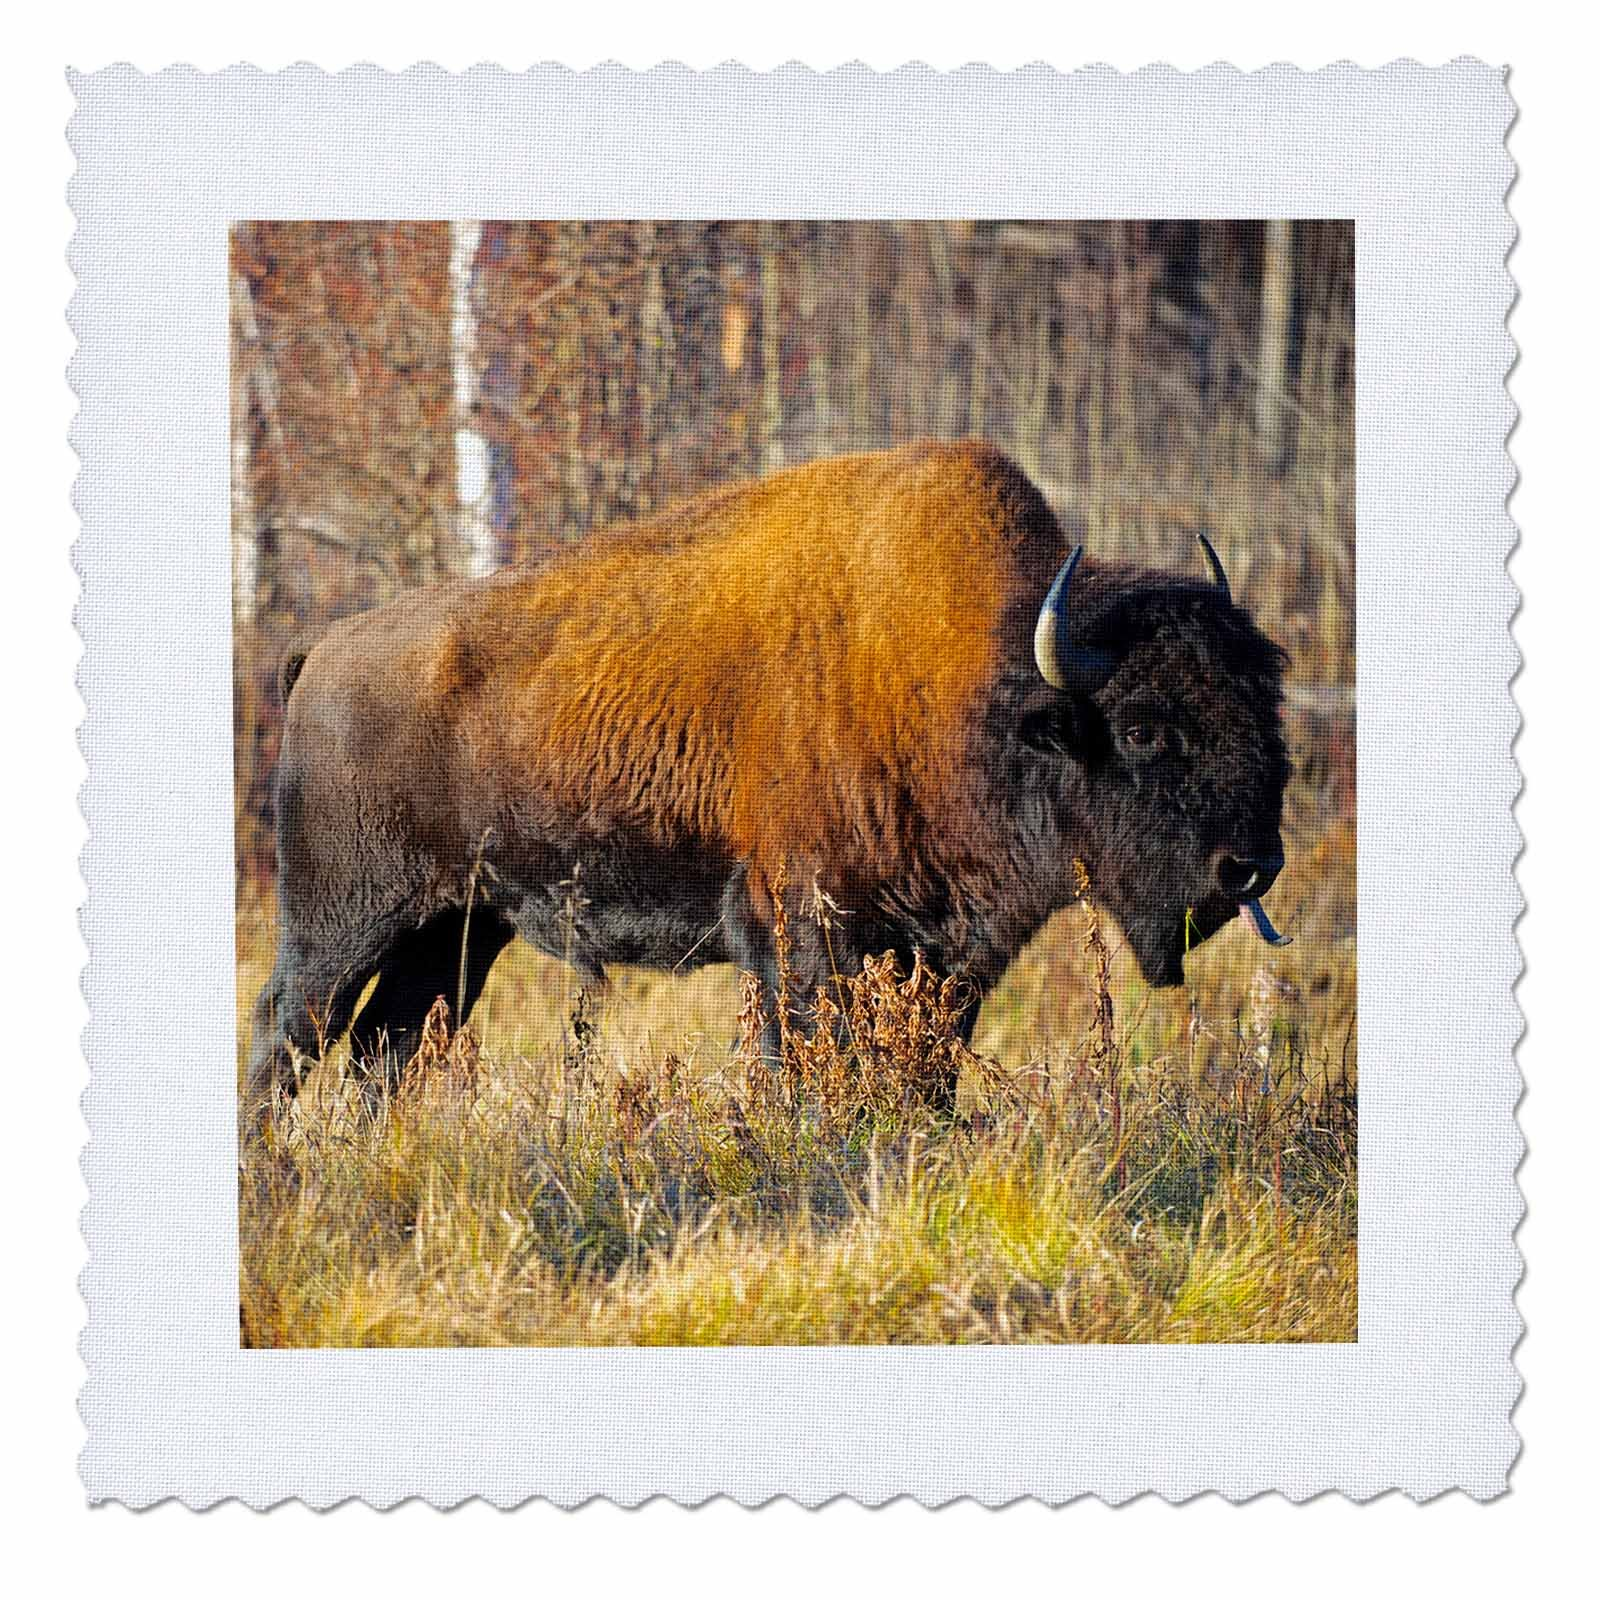 3dRose Danita Delimont - Bison - Wood bison bull grazing in autumn meadow, British Columbia, Canada - 16x16 inch quilt square (qs_257468_6)